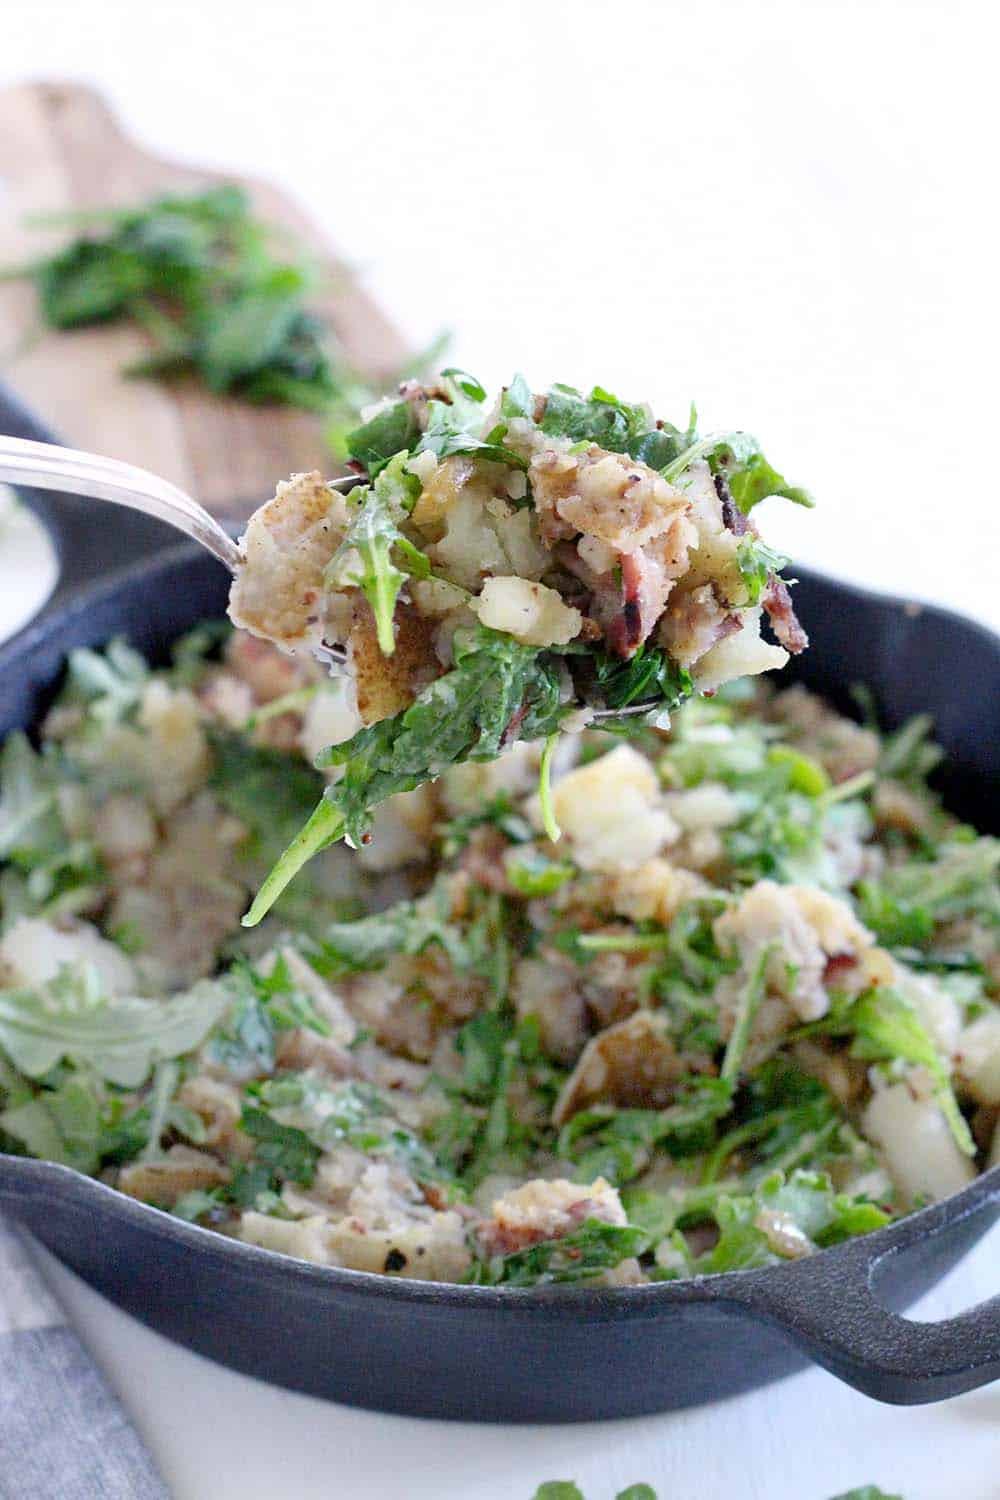 This Skillet Potato Salad with Bacon and Arugula recipe is served warm with a sweet and tangy vinegar-based dressing. It's similar to German potato salad, Paleo and gluten-free, and the perfect side dish all year round!